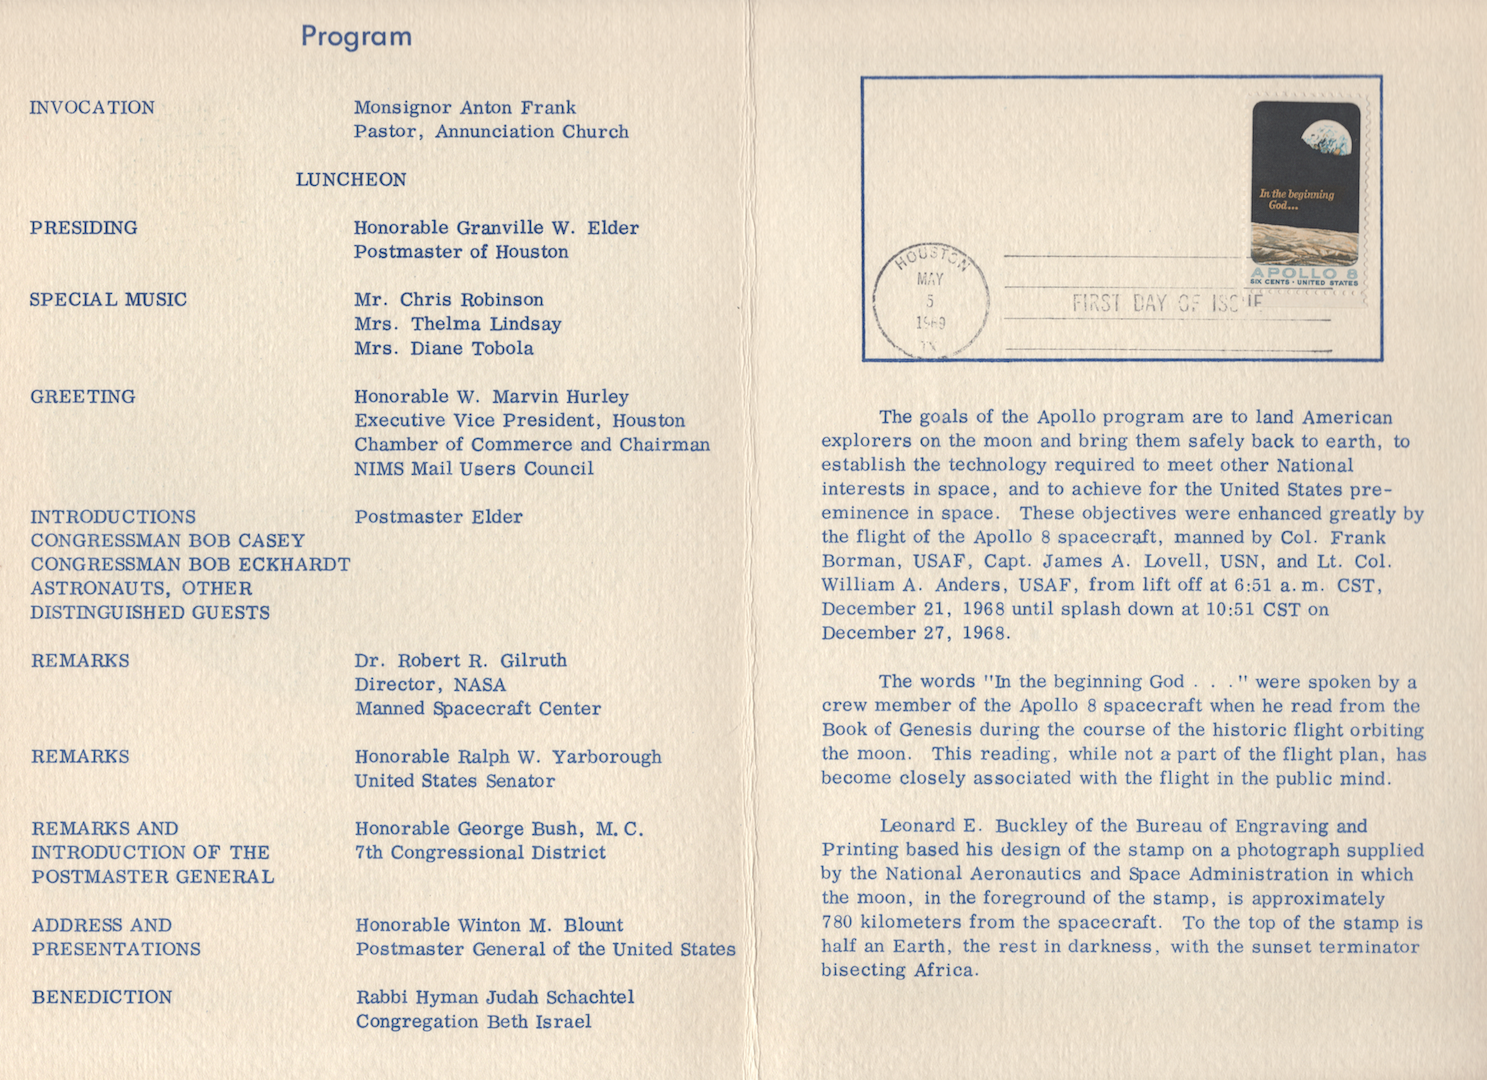 ERM-1969-EPHEMERA-APOLLO_8-STAMP-CEREMONY_GUIDE-INSIDE.png